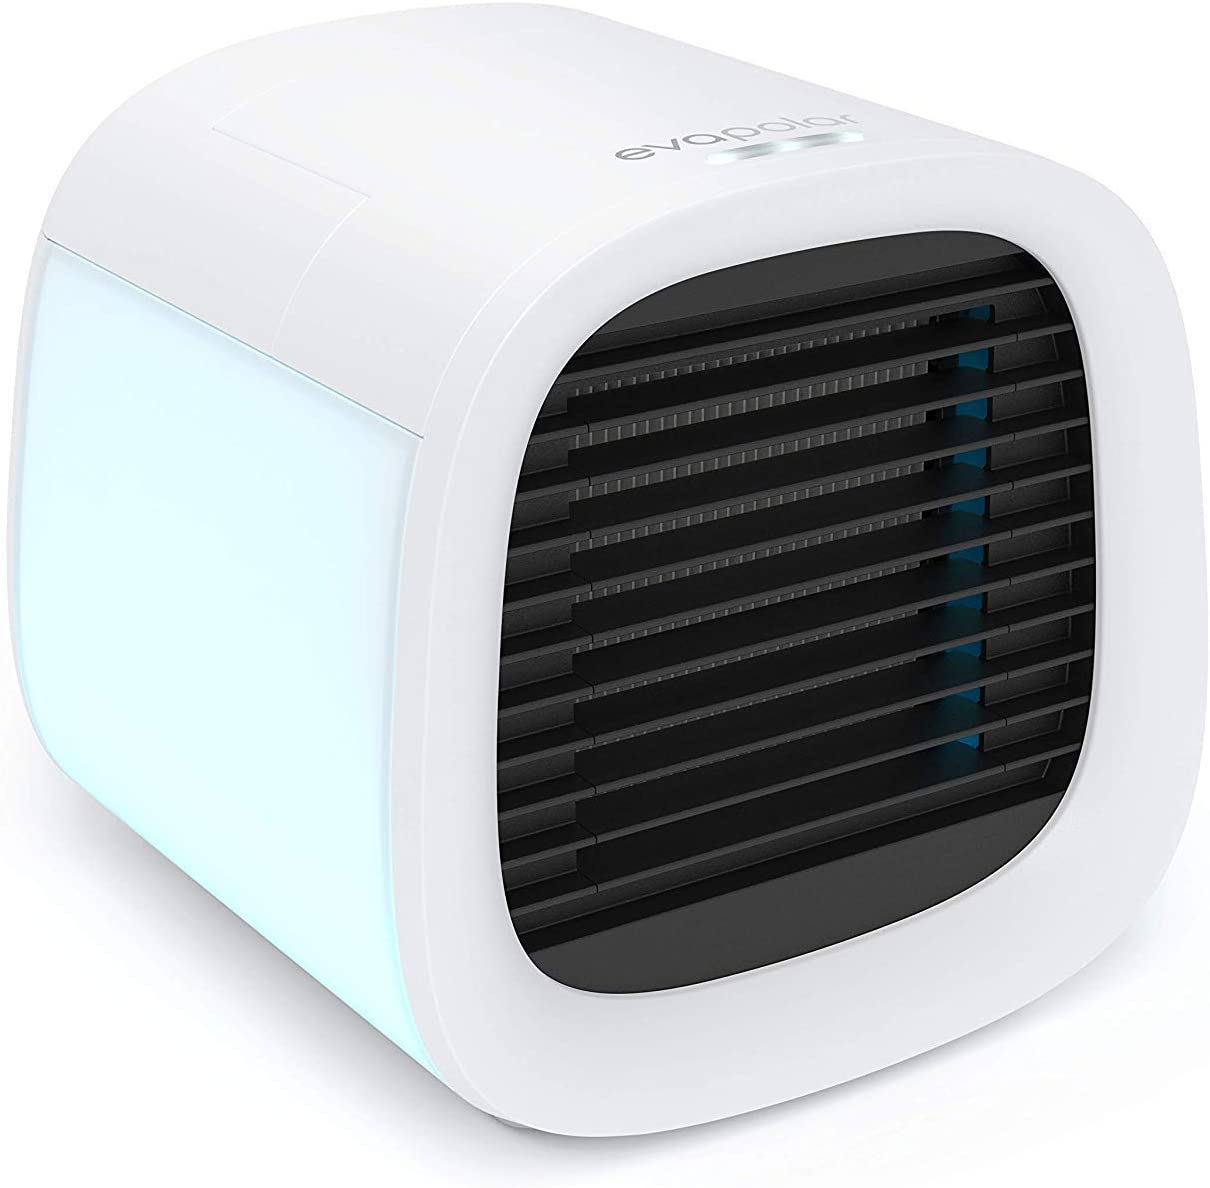 Evapolar evaCHILL Personal Evaporative Air Cooler and Humidifier Portable Air Conditioner Fan, White